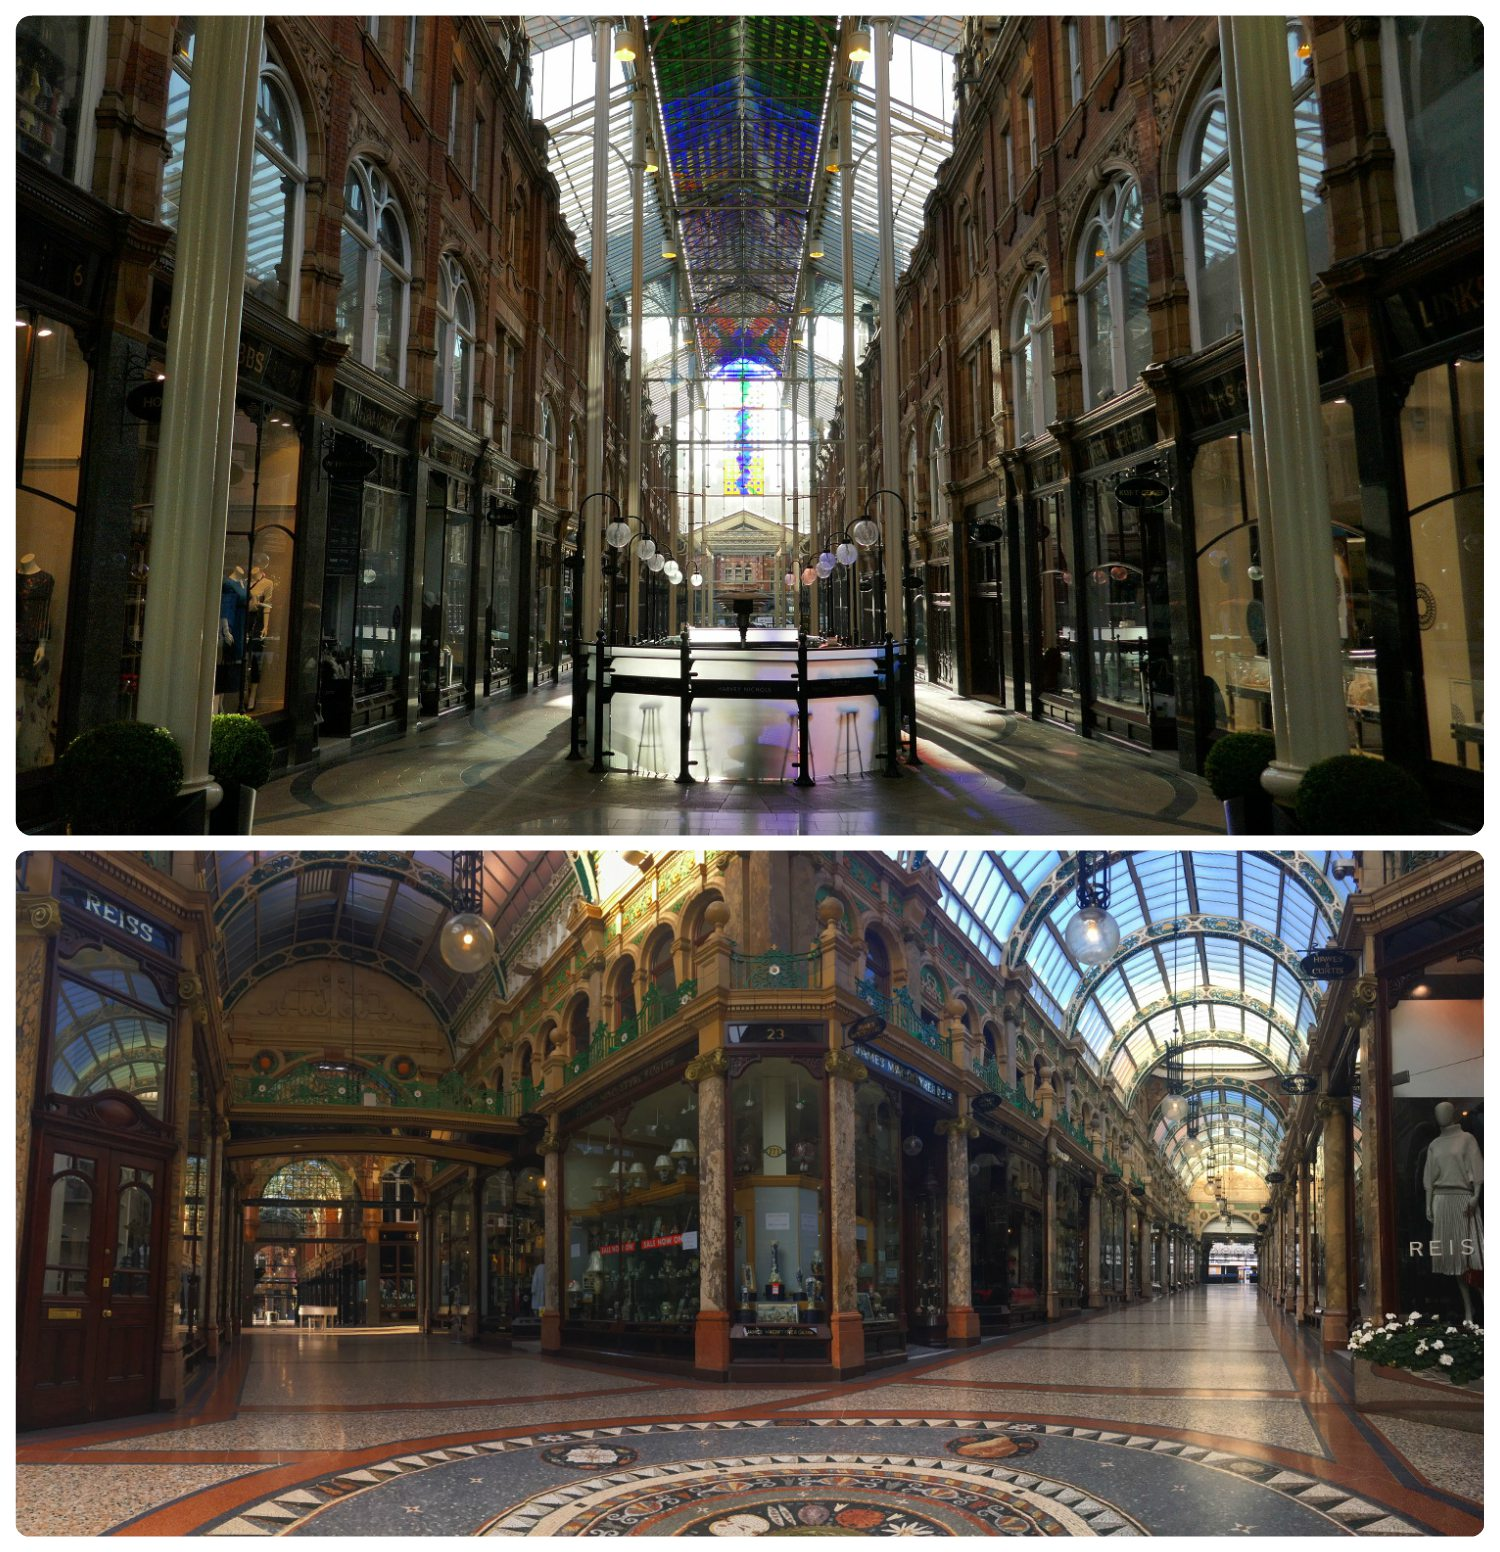 Our third visit to a Leeds arcade was Victoria Quarter (top image); one of the more well known arcades in the city. Once we took in the Victorian glamour of Victoria Quarter, we walked down the passage way and found another passage way that led to County Arcade (bottom image).